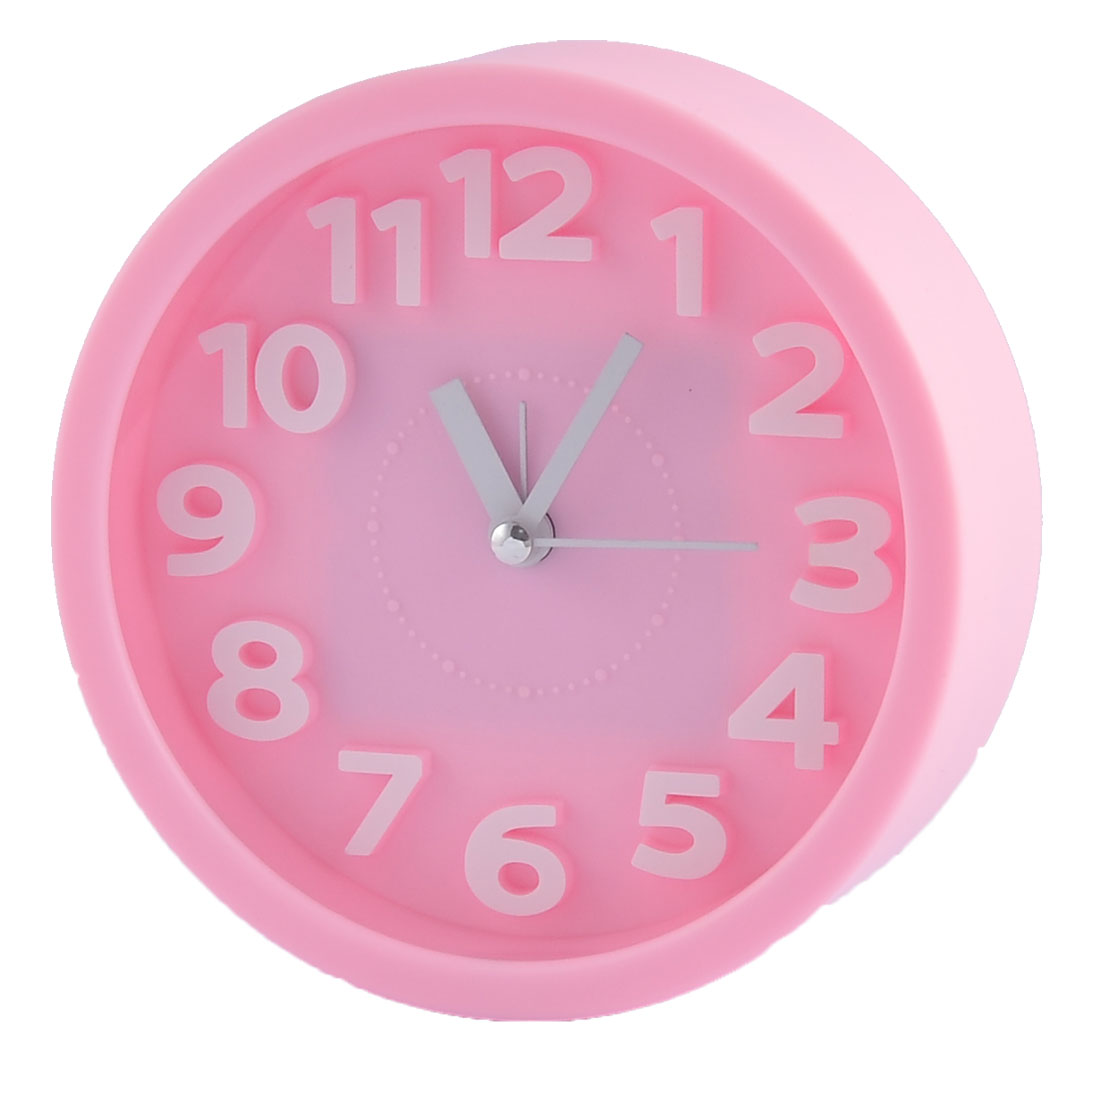 Household Office Desktop Plastic Round Silent Battery Powered Arabic Number Alarm Clock Pink